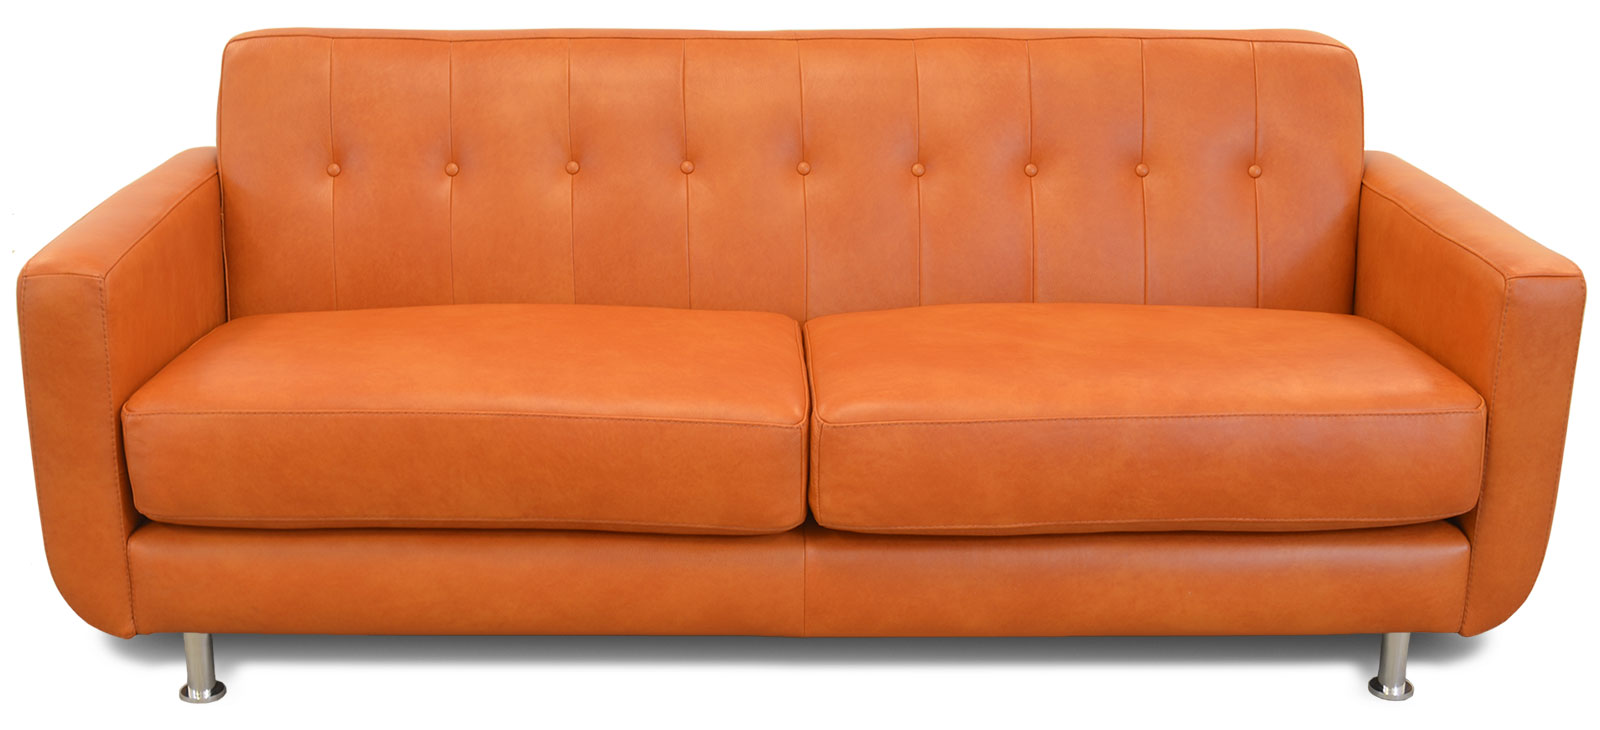 Greta 2 Cushion Sofa